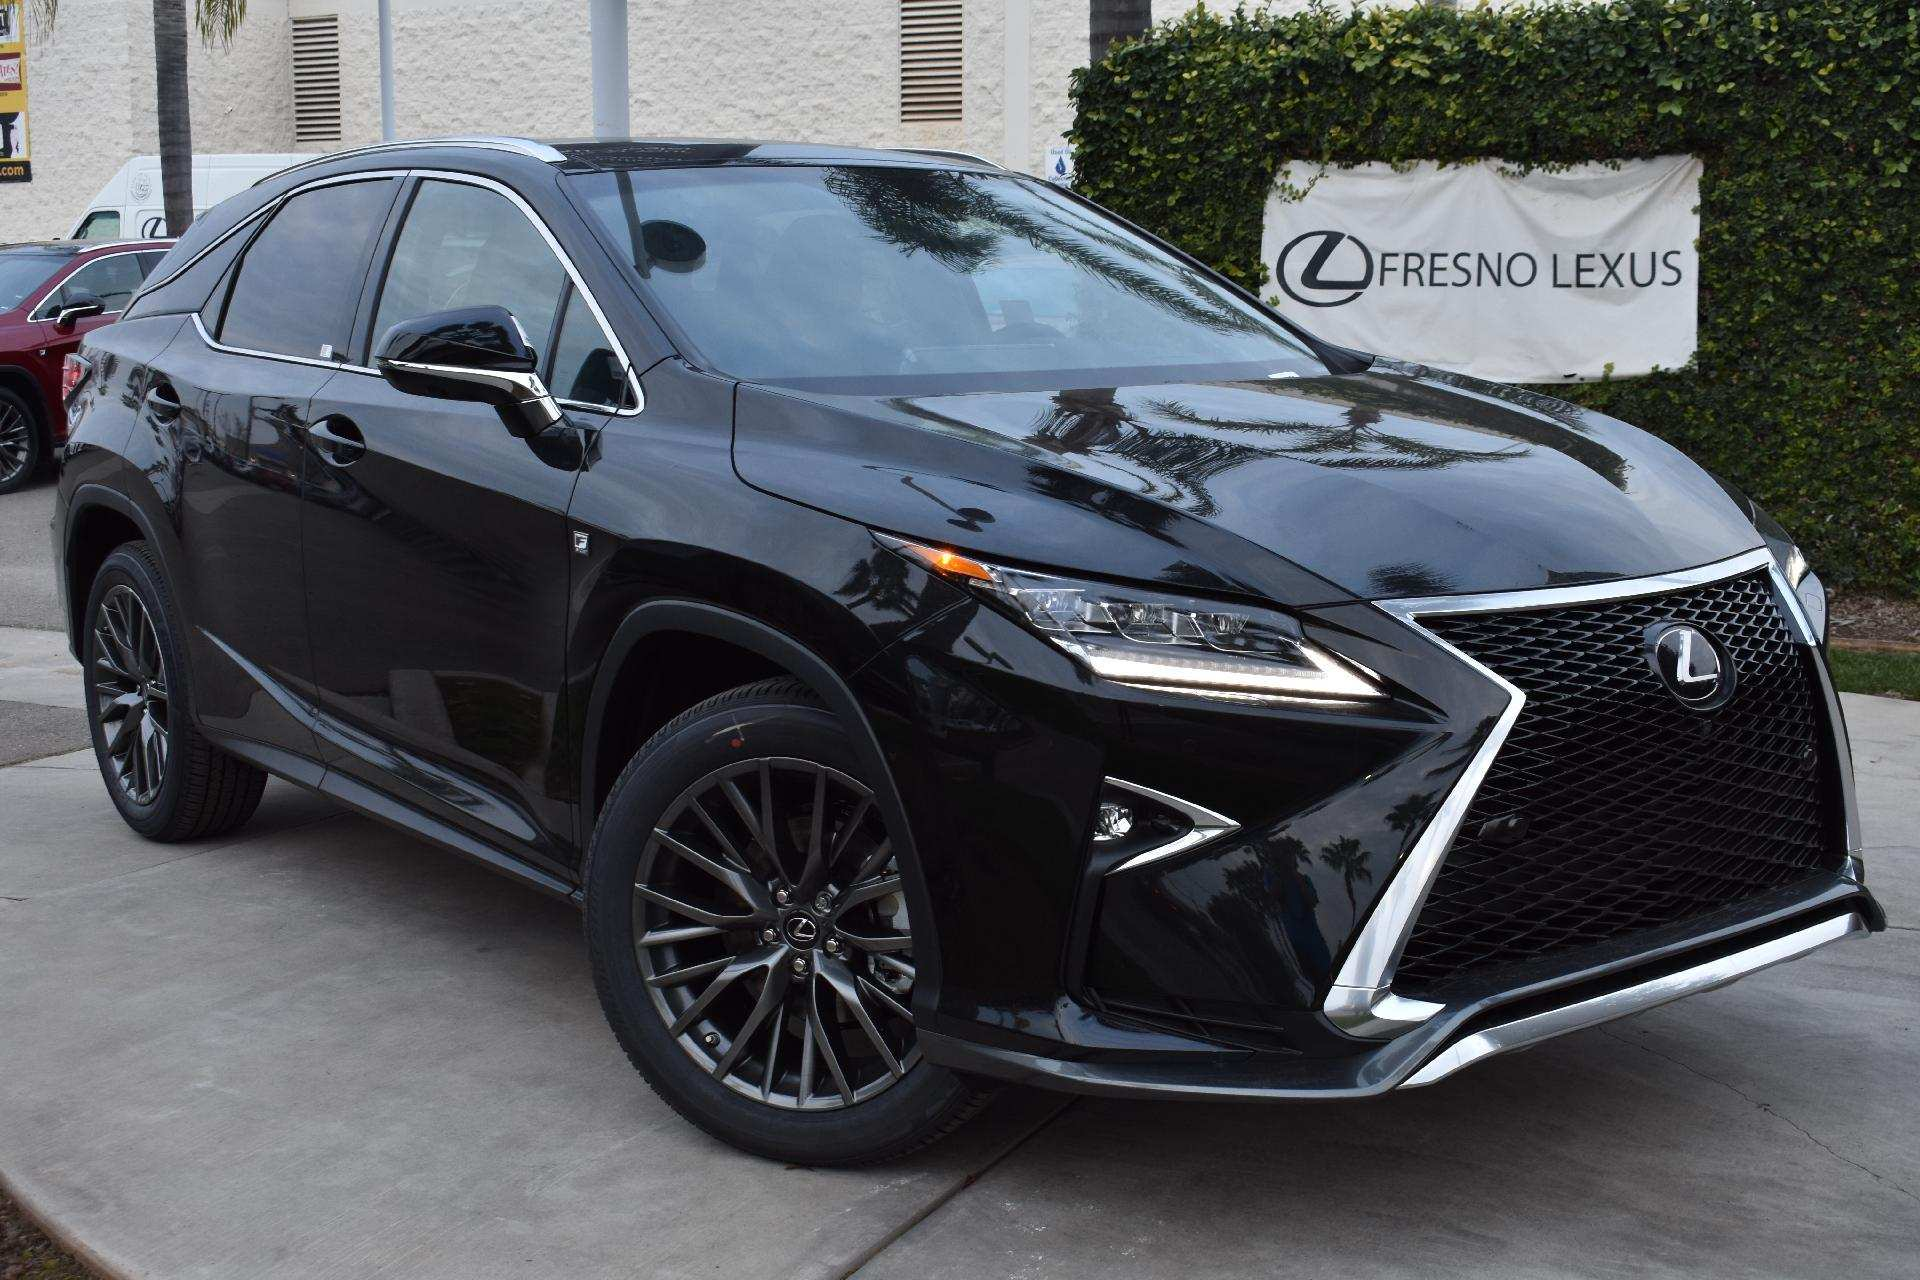 44 All New 2019 Lexus TX 350 Prices